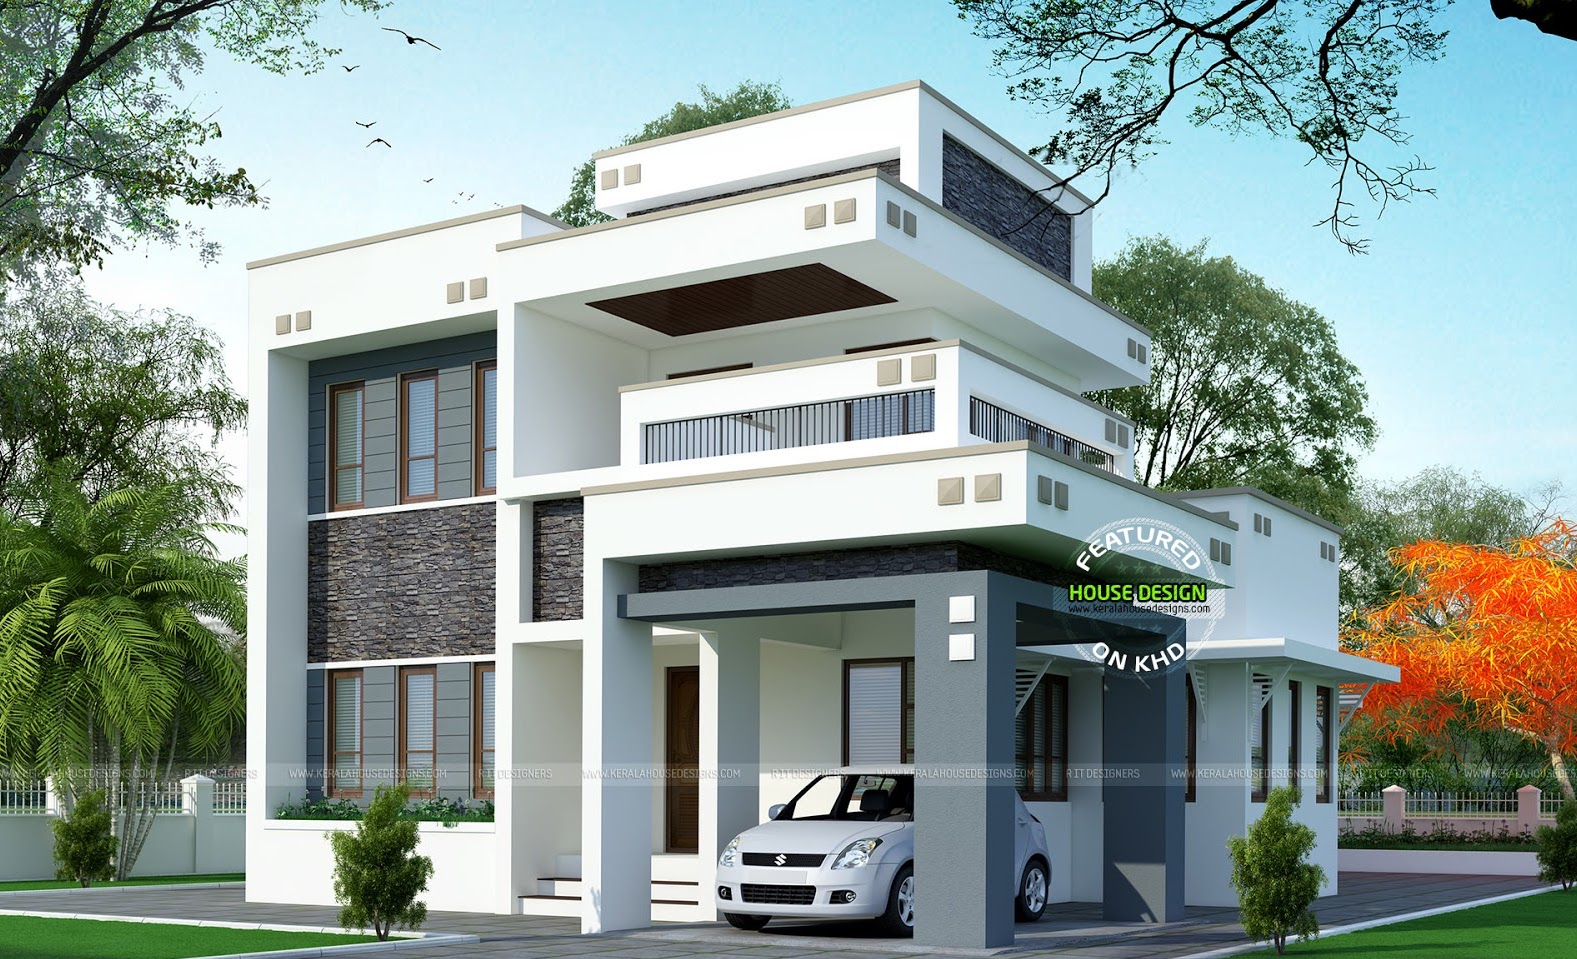 A three bedroom home combines versatility and function. [Image Credit: Kerala House Designs]